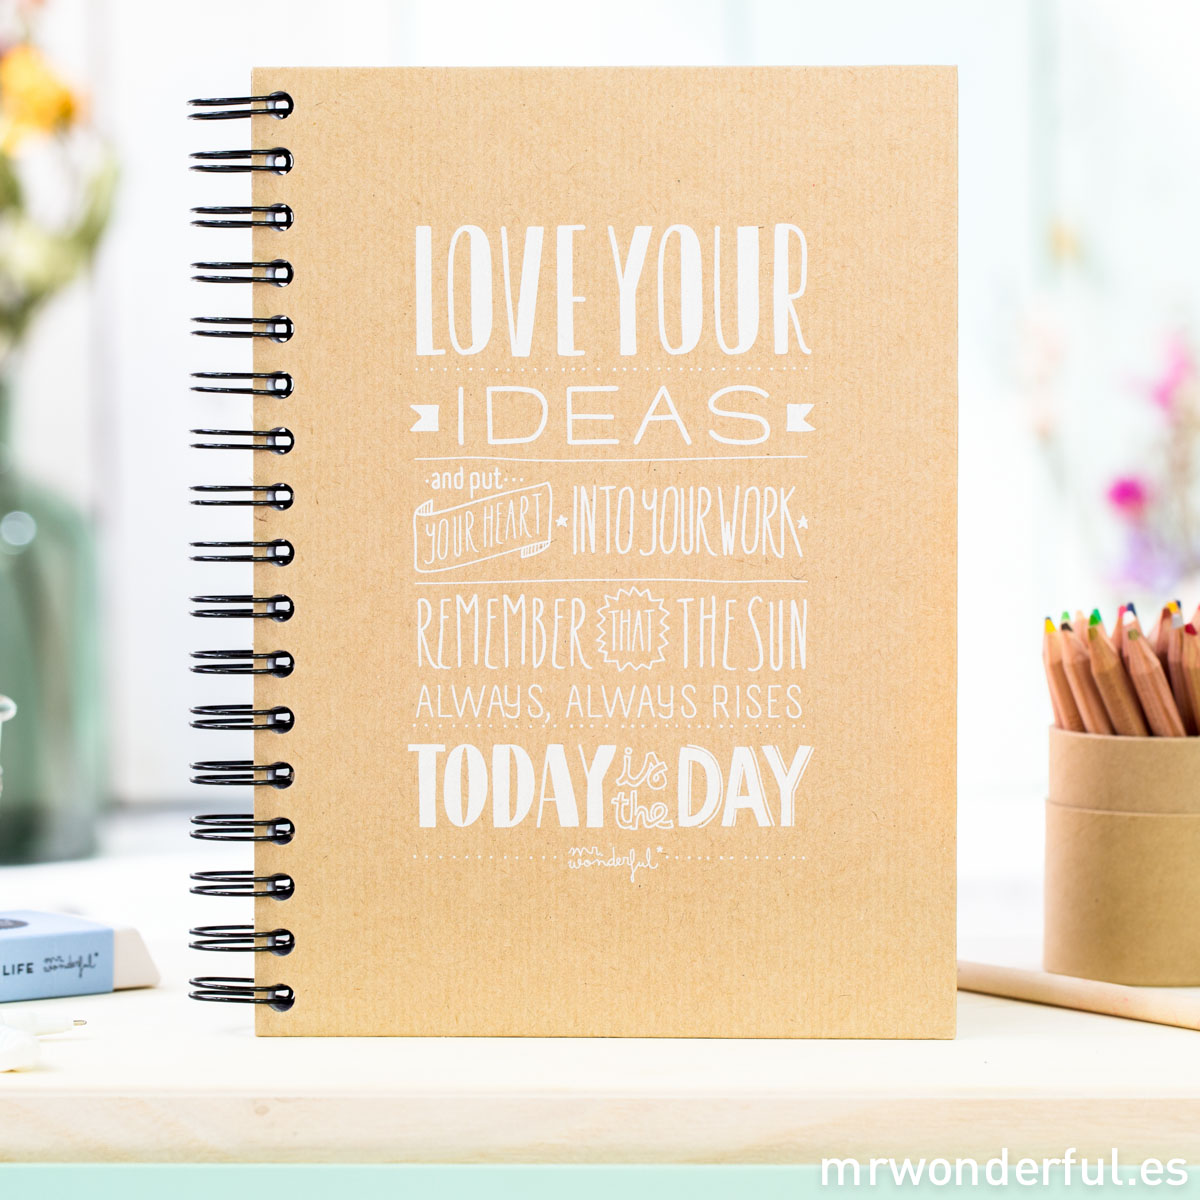 mrwonderful_LIB19A_Libreta-craft_Love-your-ideas-2